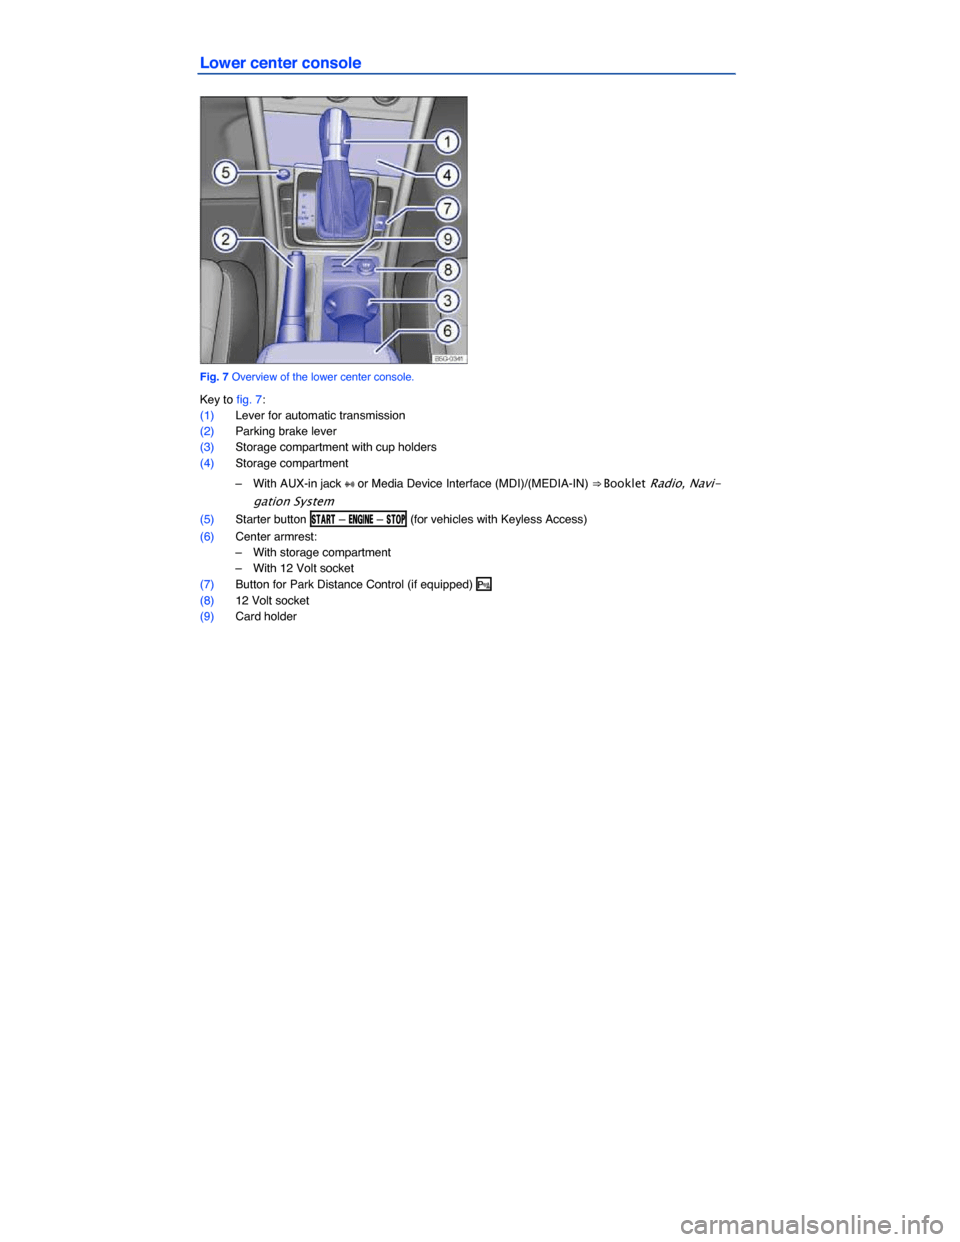 VOLKSWAGEN E GOLF 2015 5G / 7.G Owners Manual